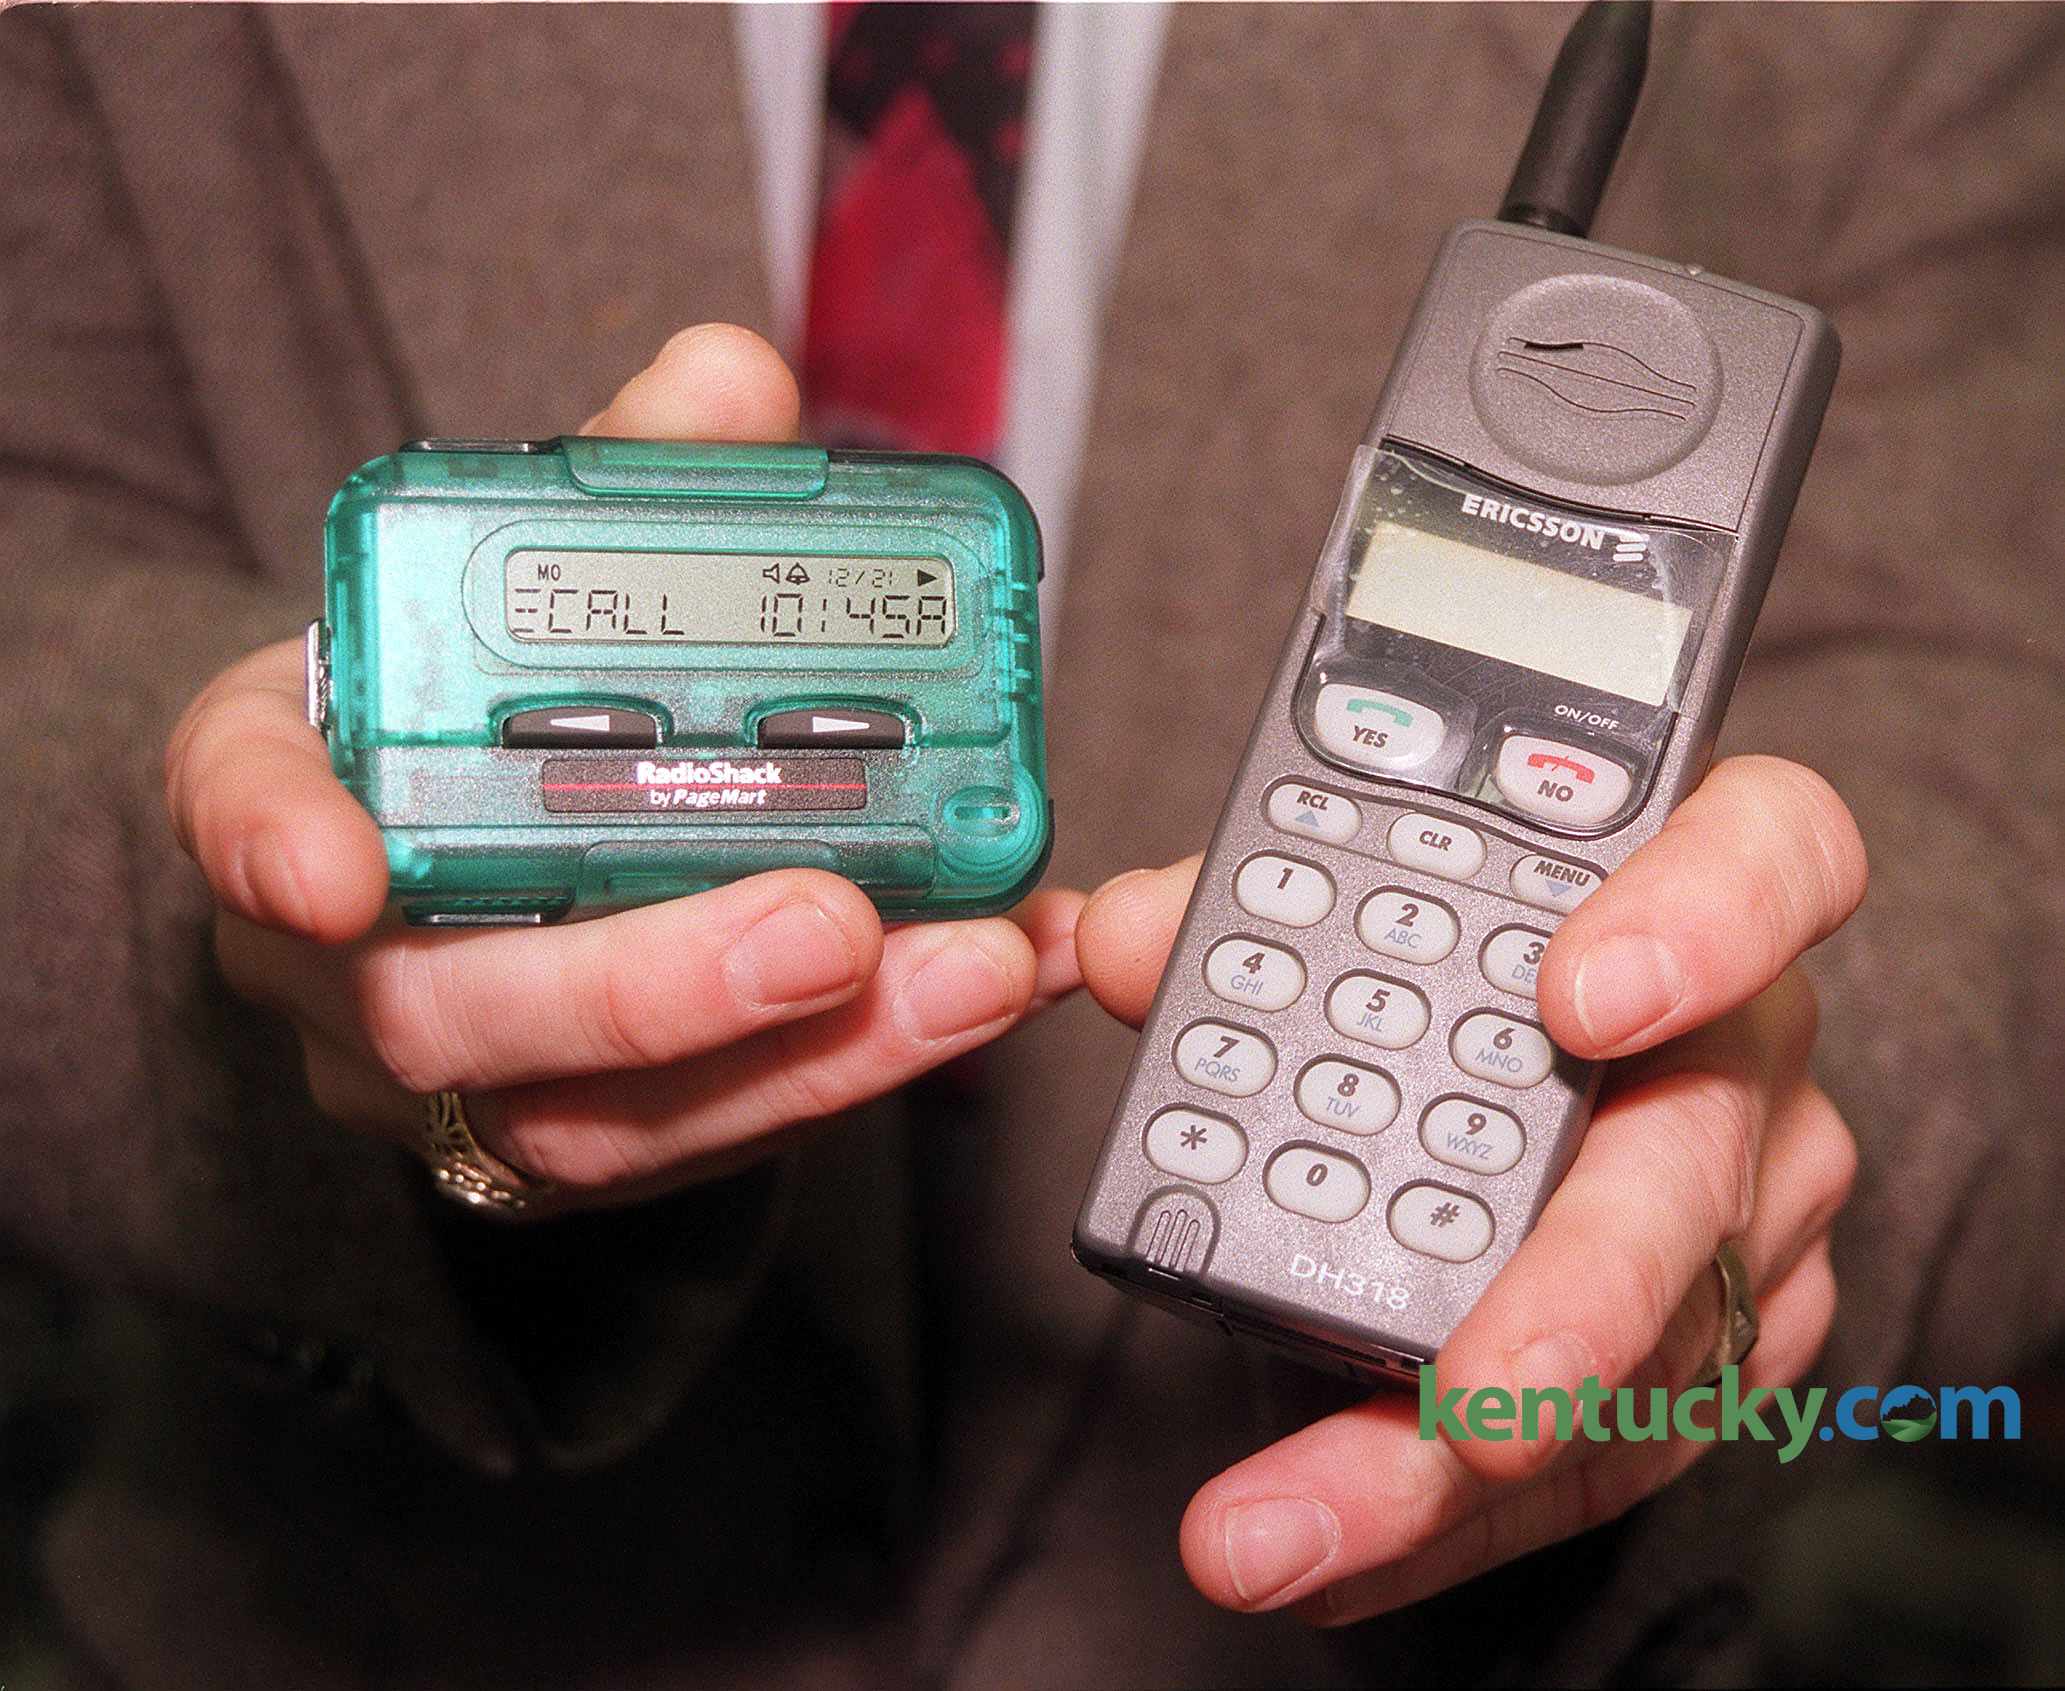 Pager And Cellphone 1997 Kentucky Photo Archive